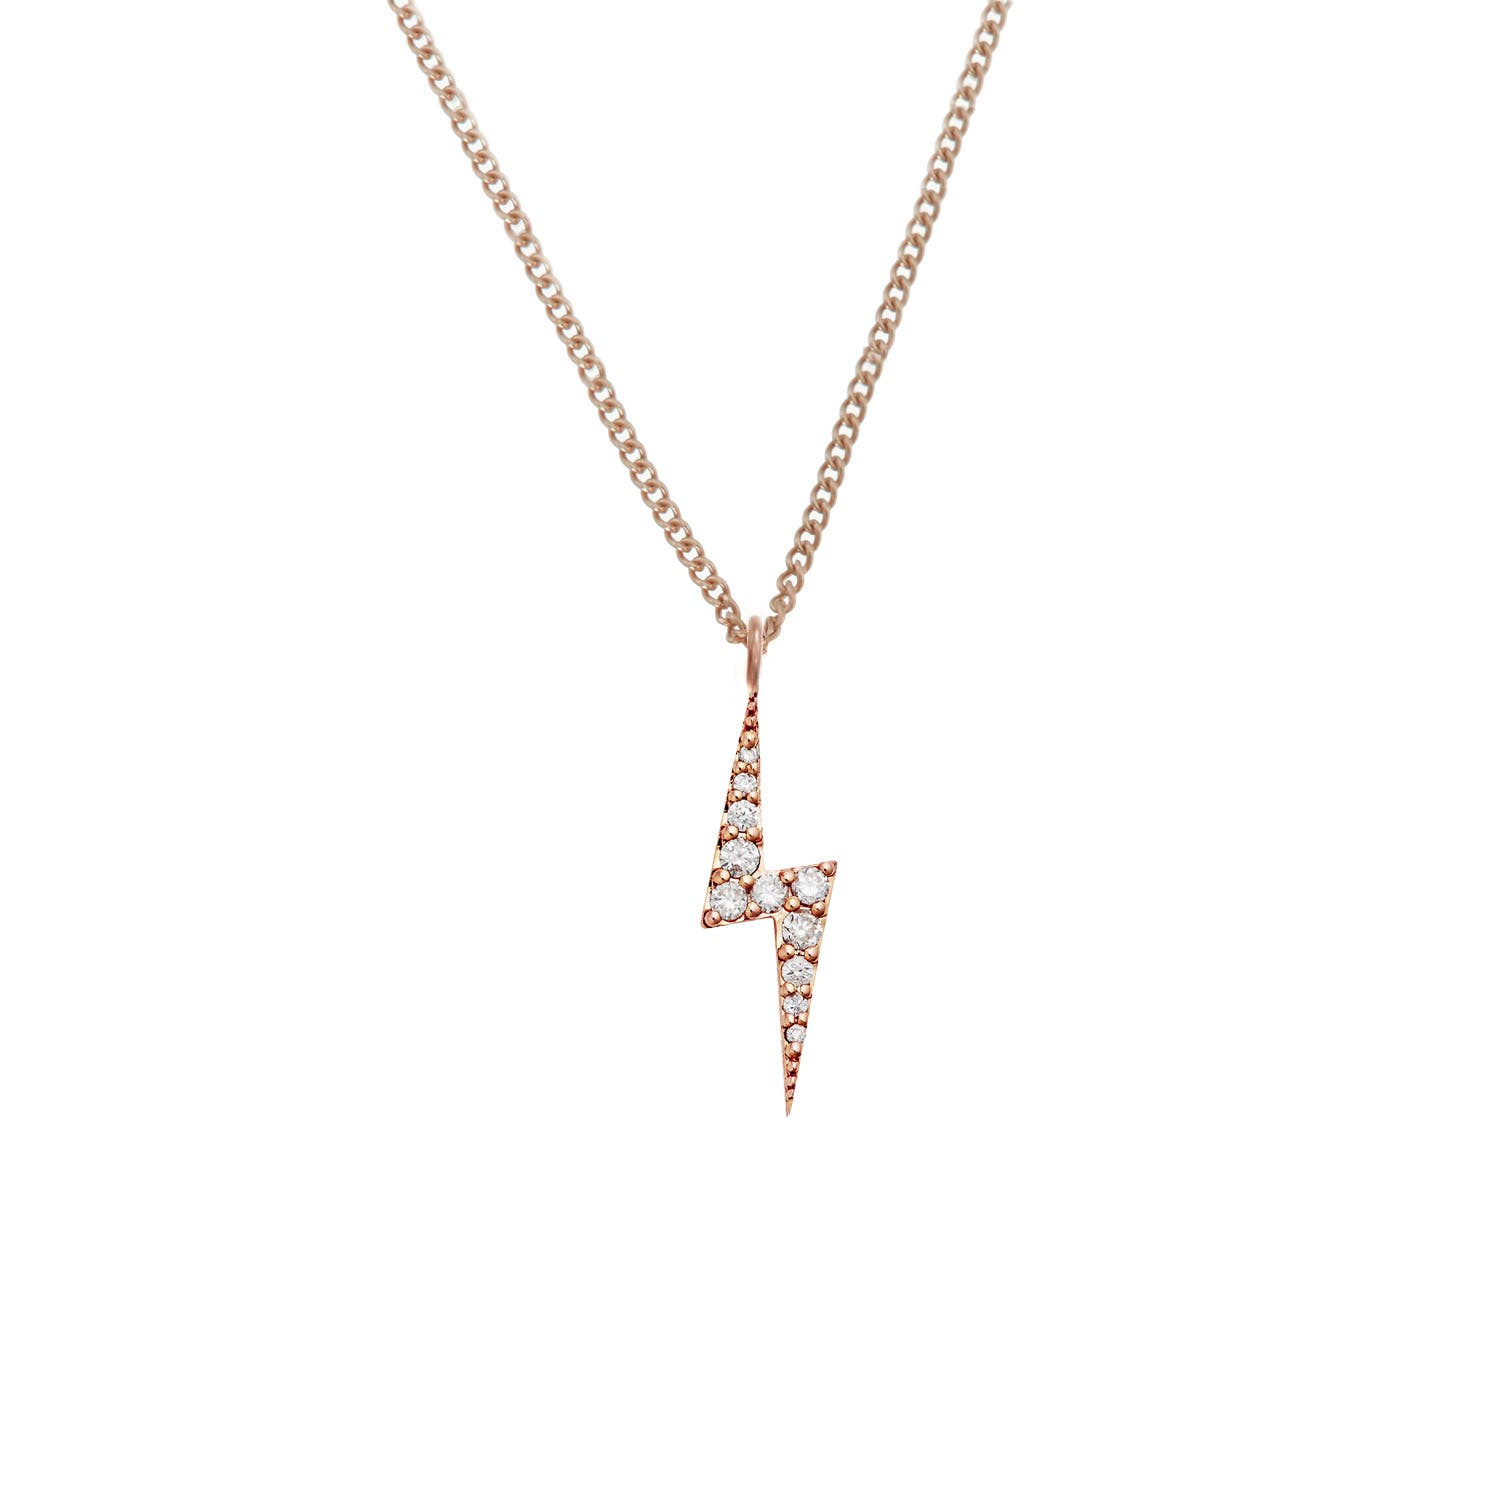 Zap Diamond Necklace 9k Rose Gold / White Diamond